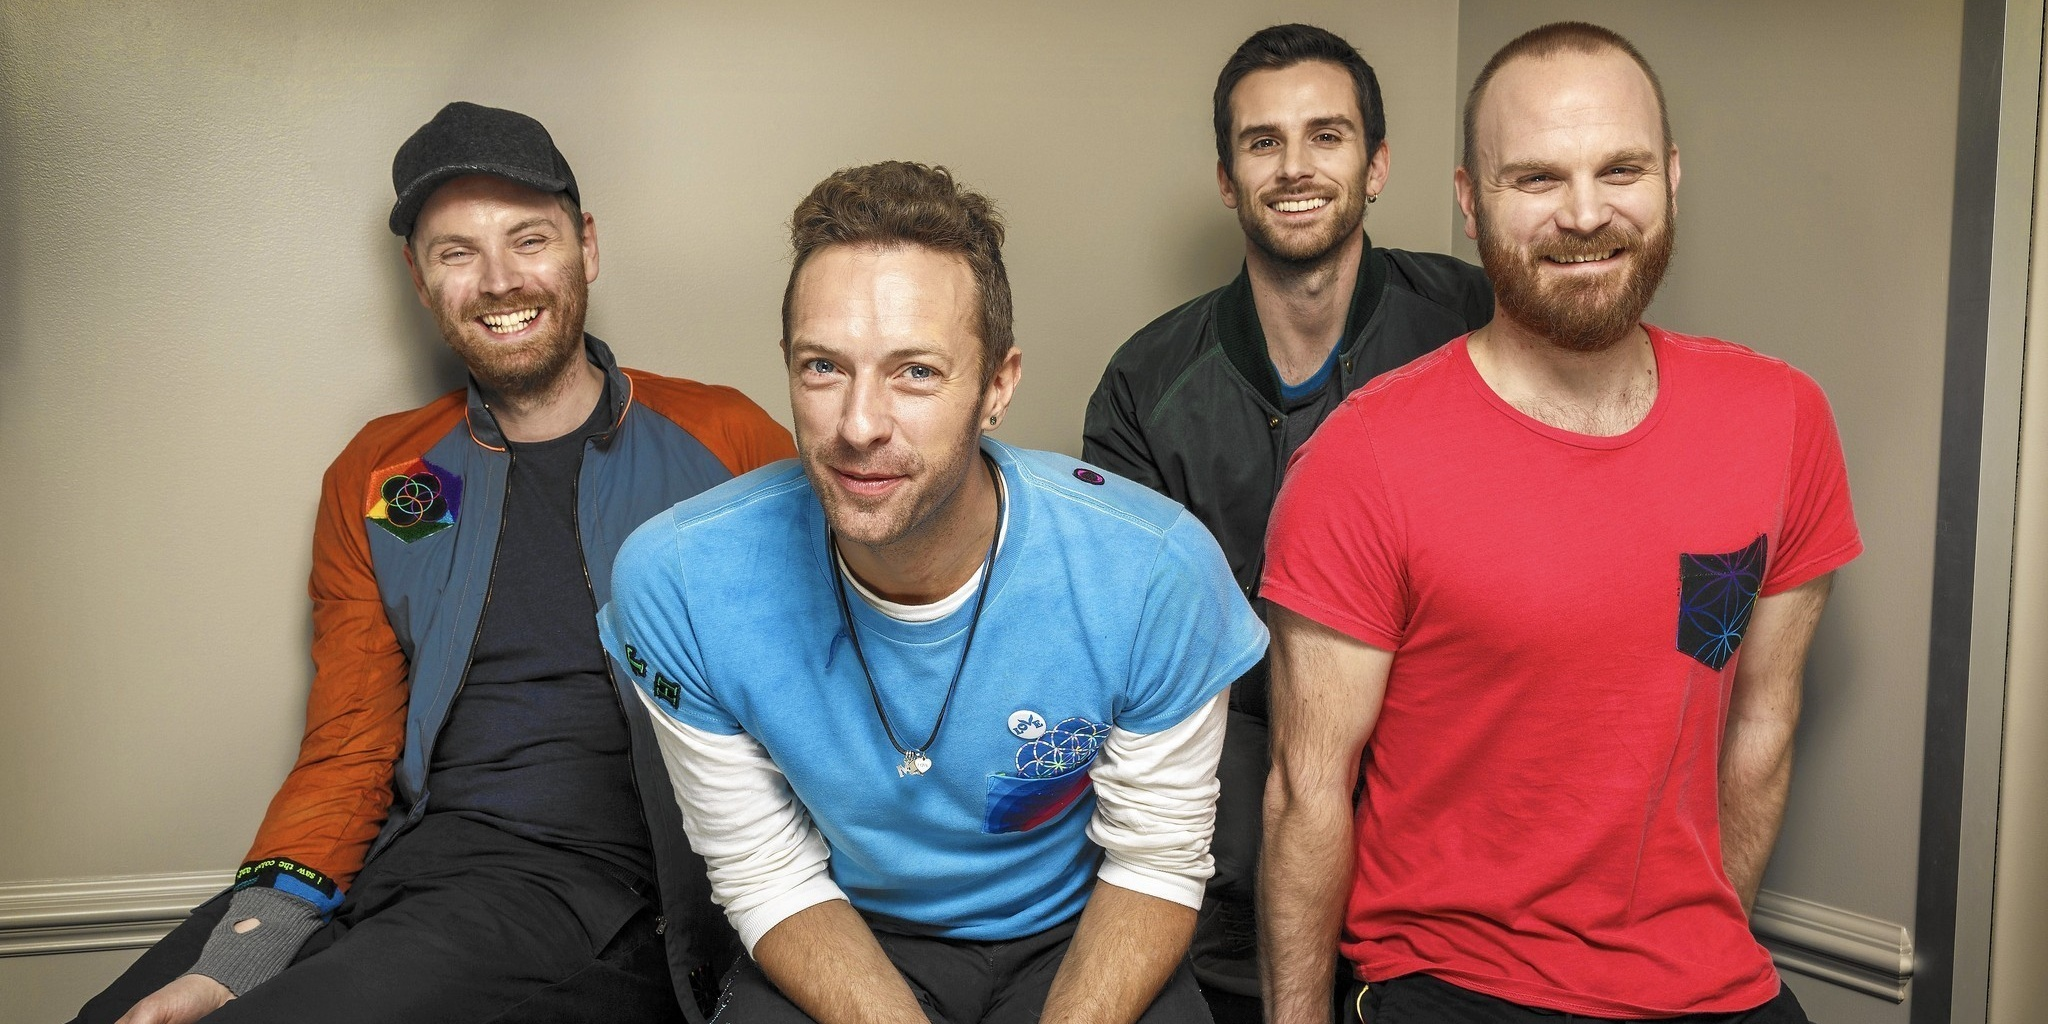 BREAKING: Coldplay adds second date for Singapore